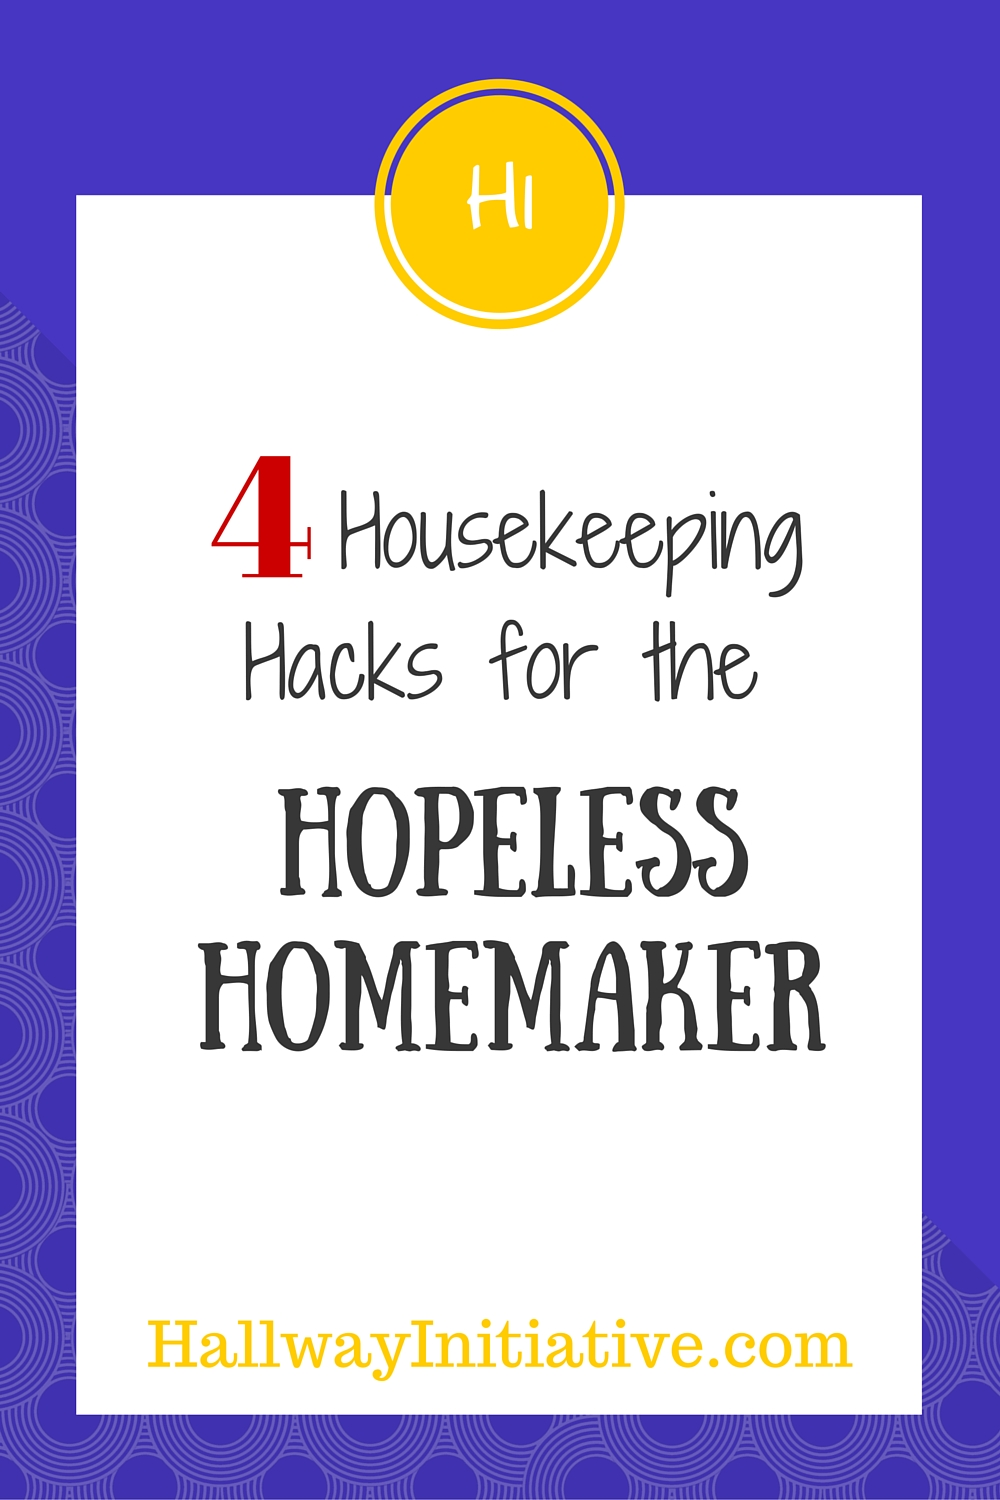 4 housekeeping hacks for the hopeless homemaker